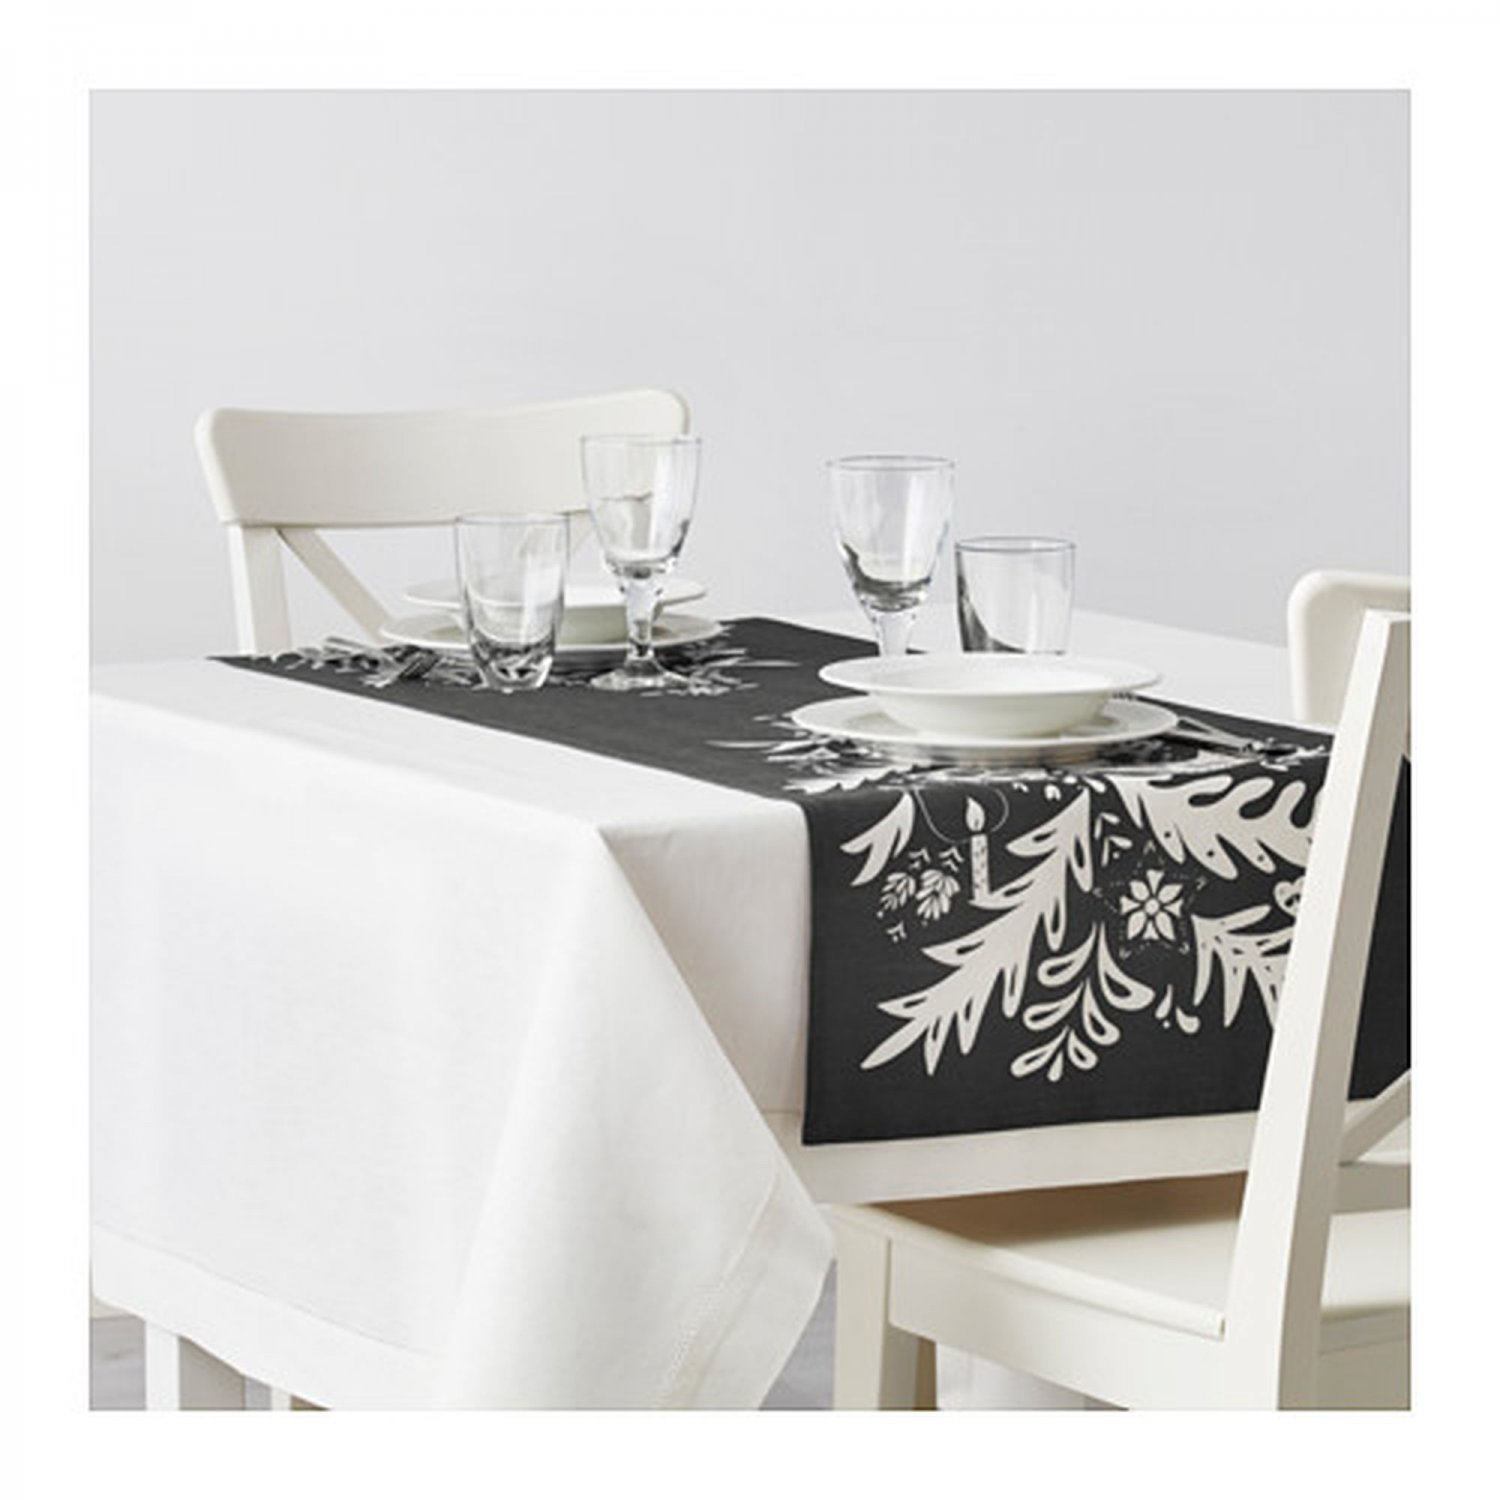 Ikea Vinter 2016 Teppich Ikea Vinter 2016 Table Runner Gray White Linen Blend 55 Quot X